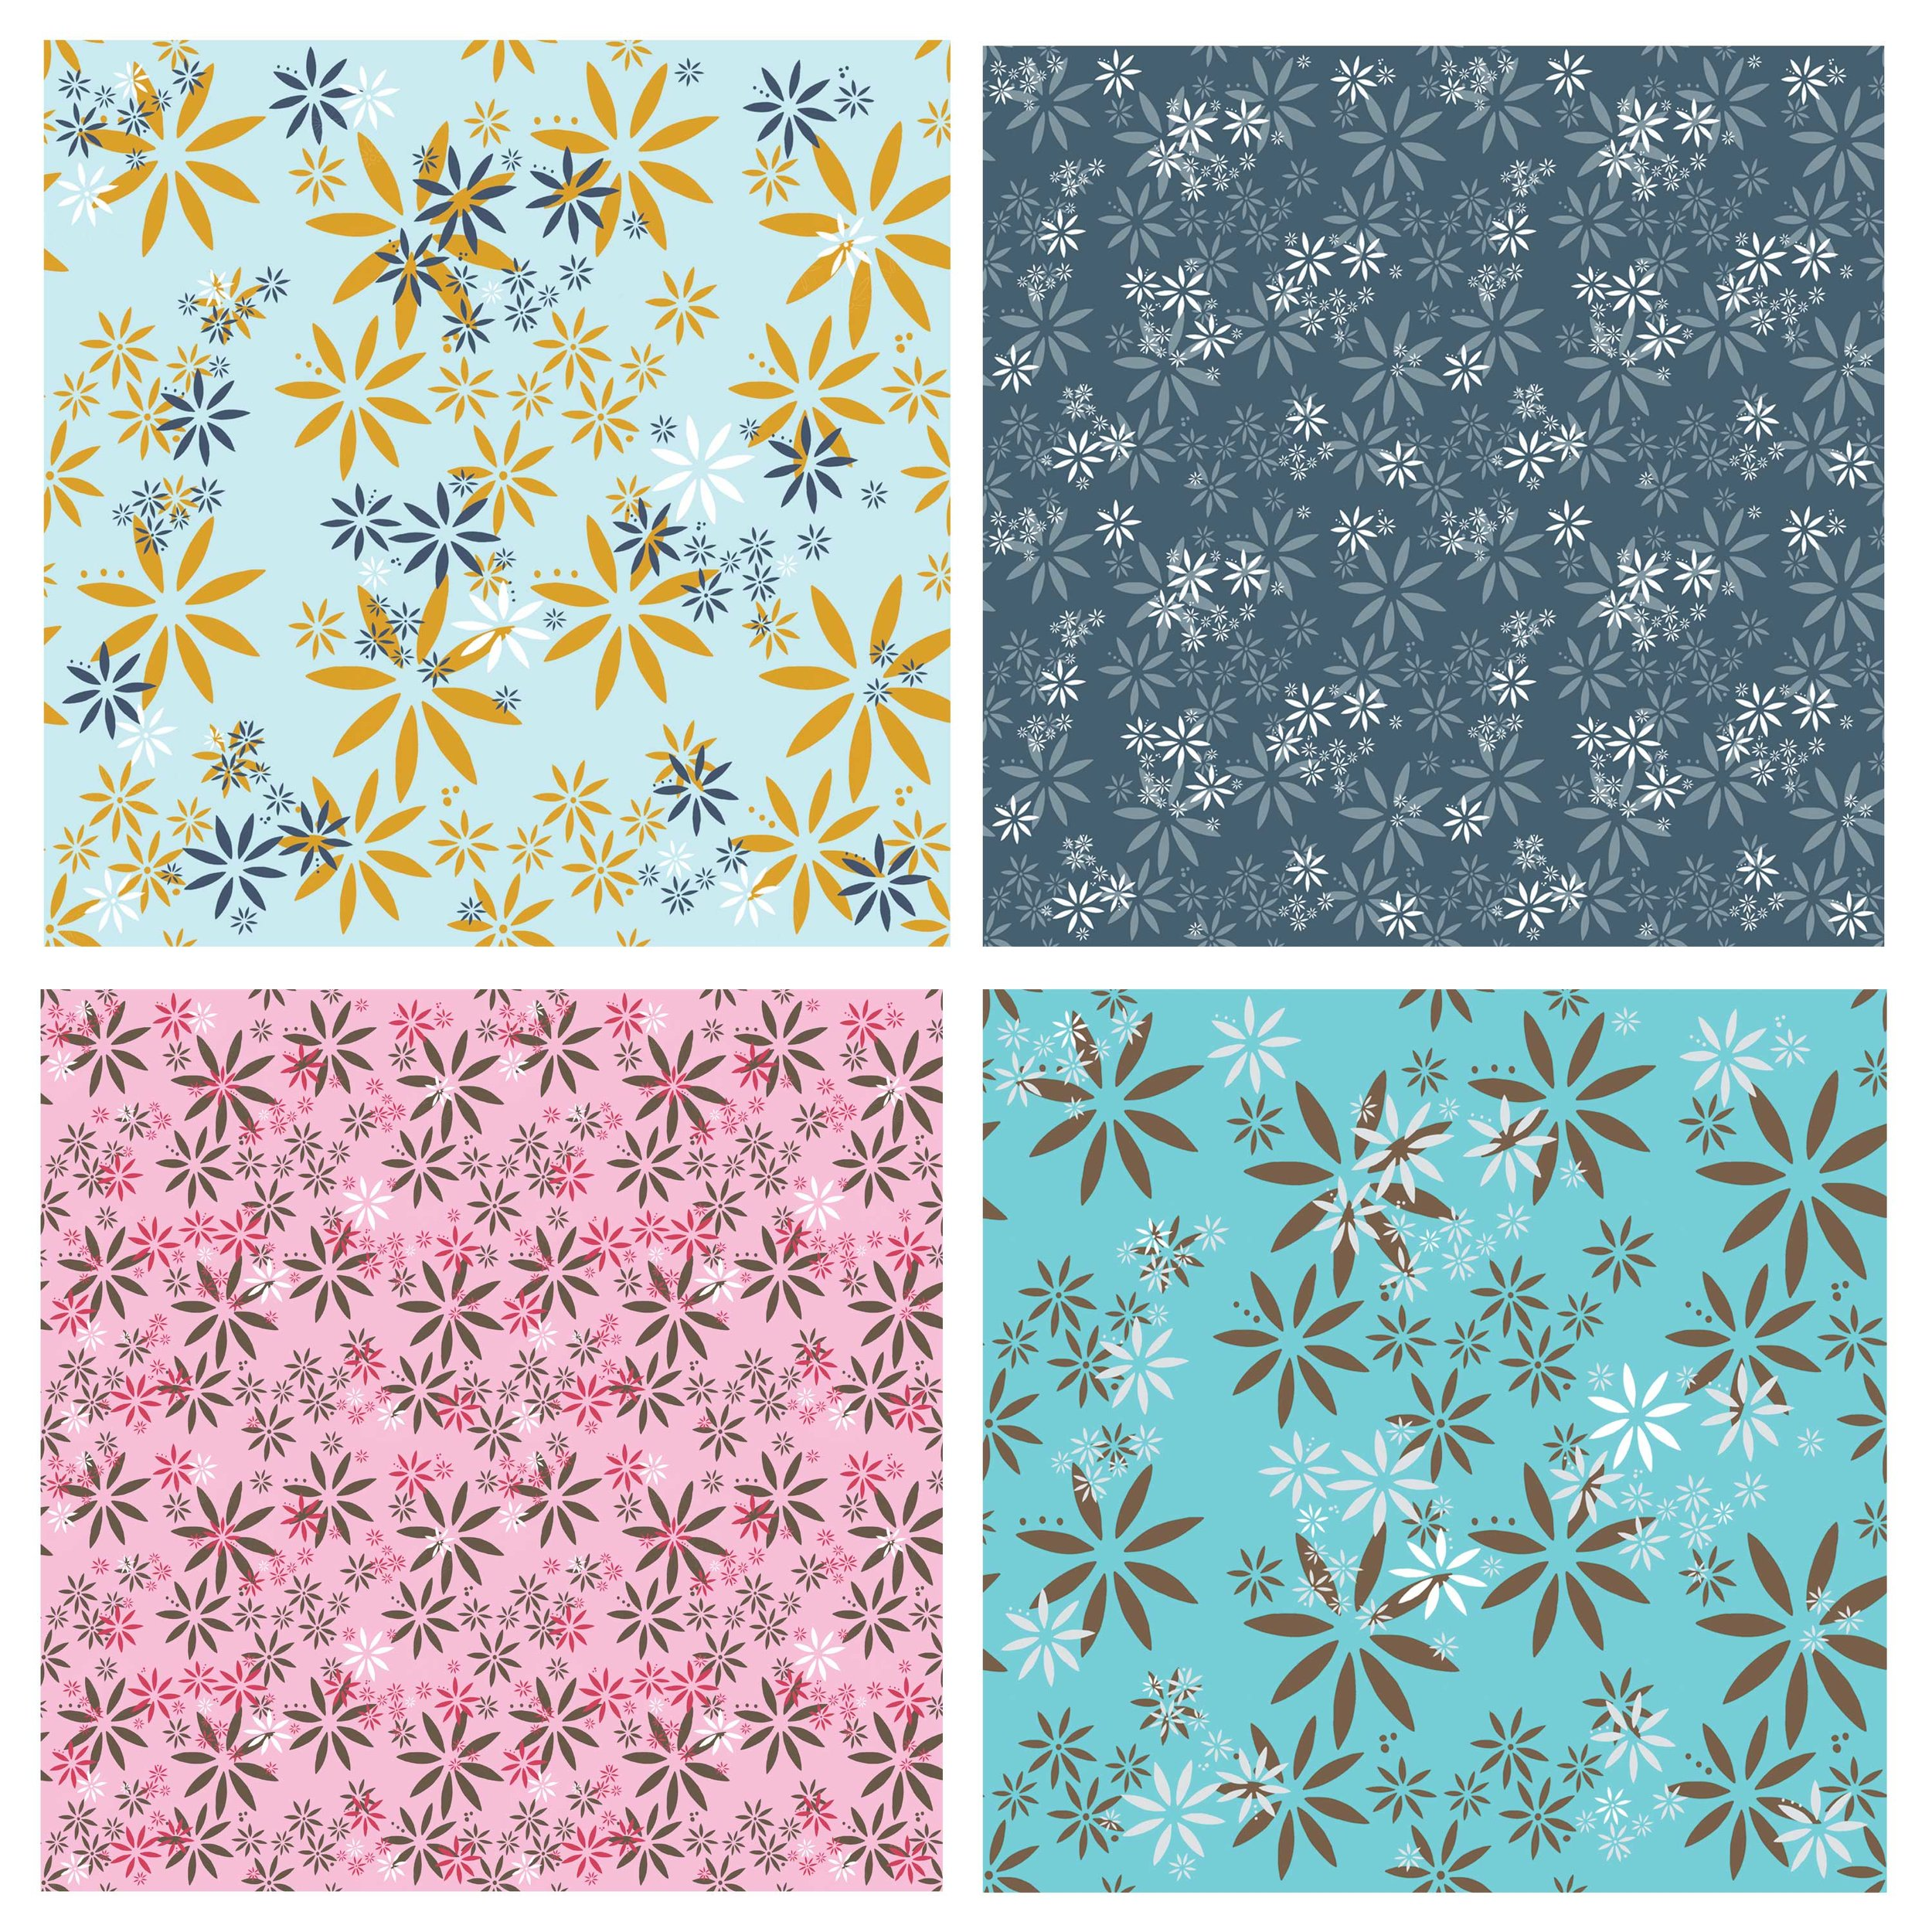 flower-burst-4-colorways.jpg